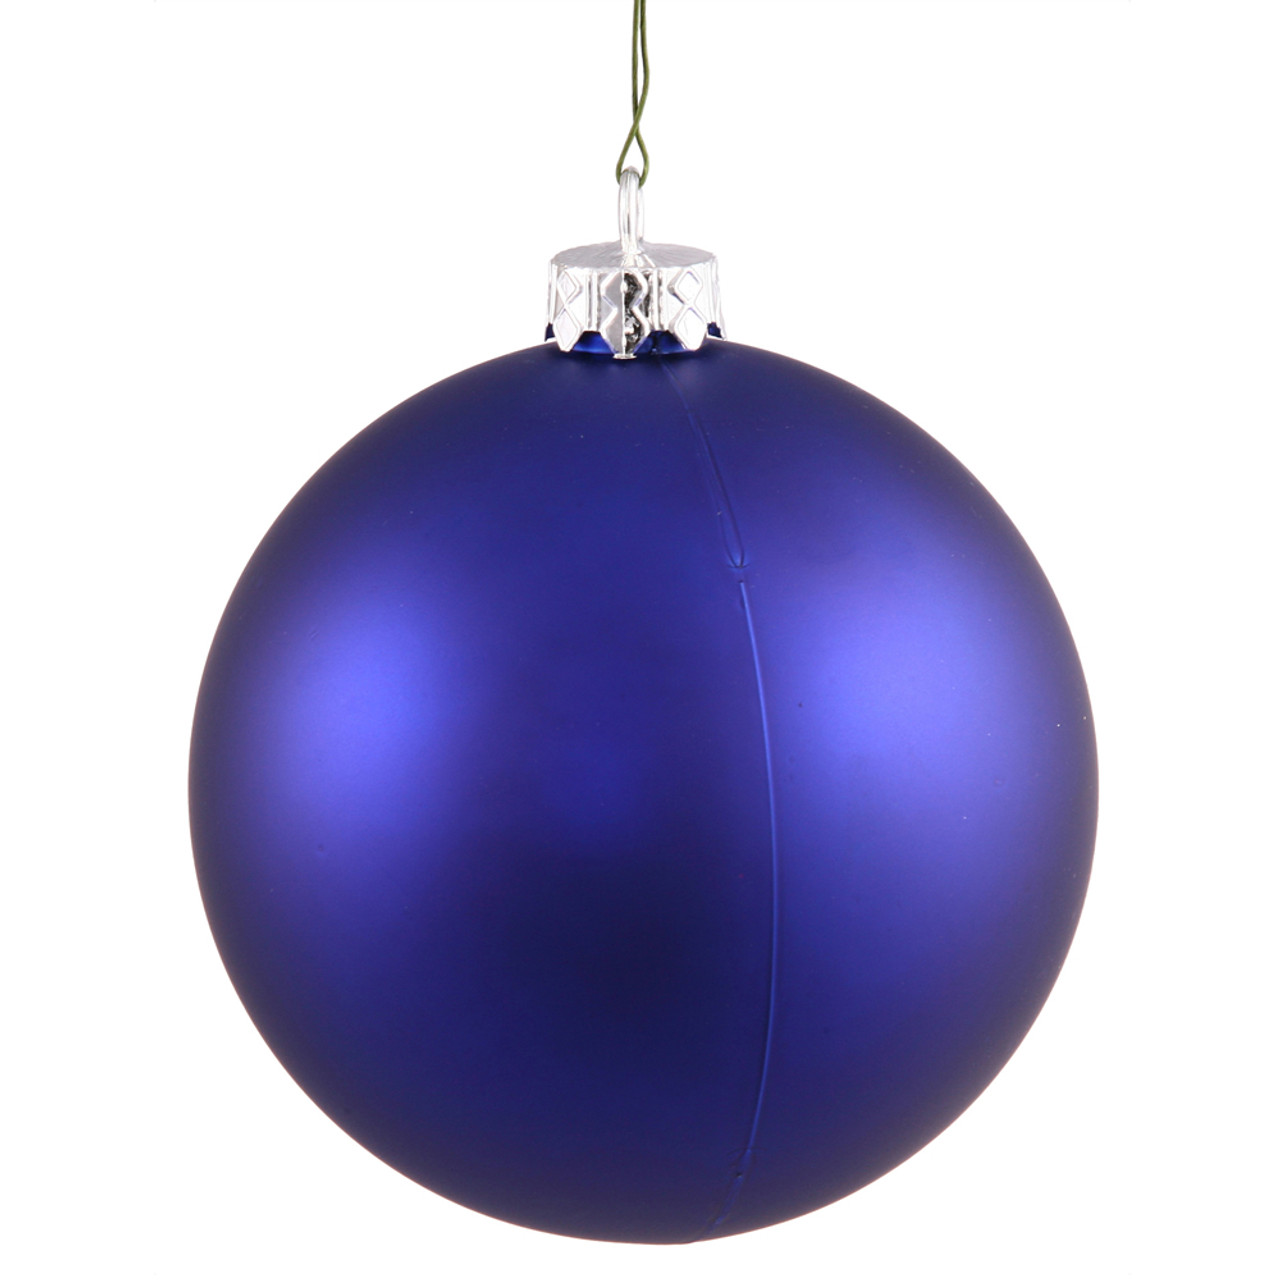 Cobalt Blue Matte Shatterproof Uv Resistant Christmas Ball Ornament 4 100mm Christmas Central